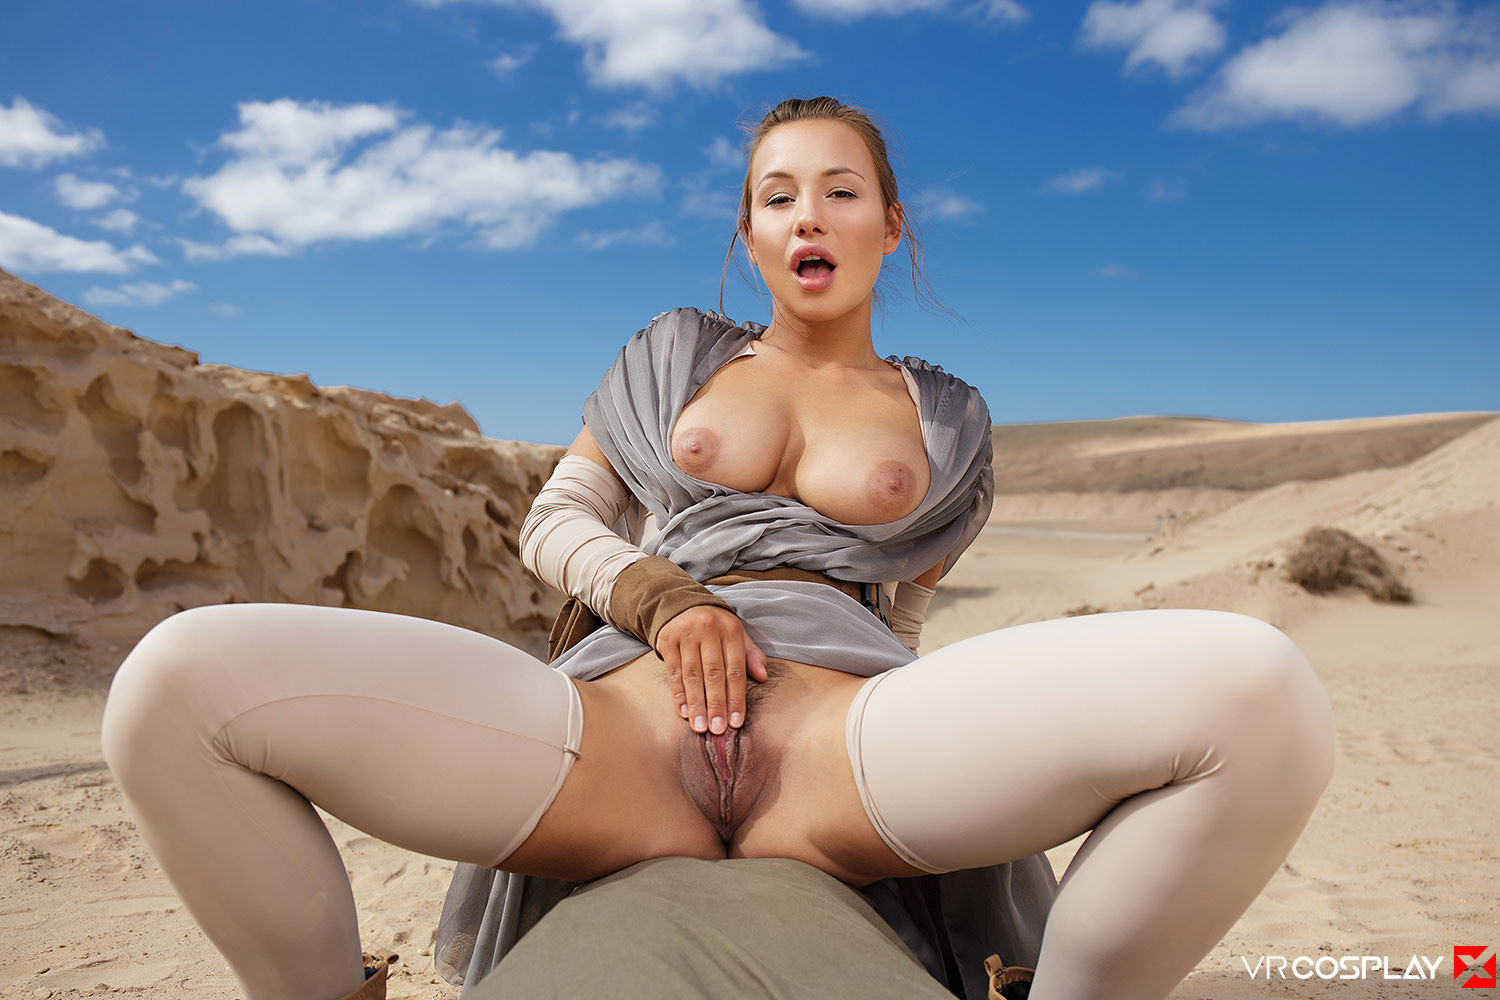 image Vrcosplayx star wars sex parody taylor sands getting banged